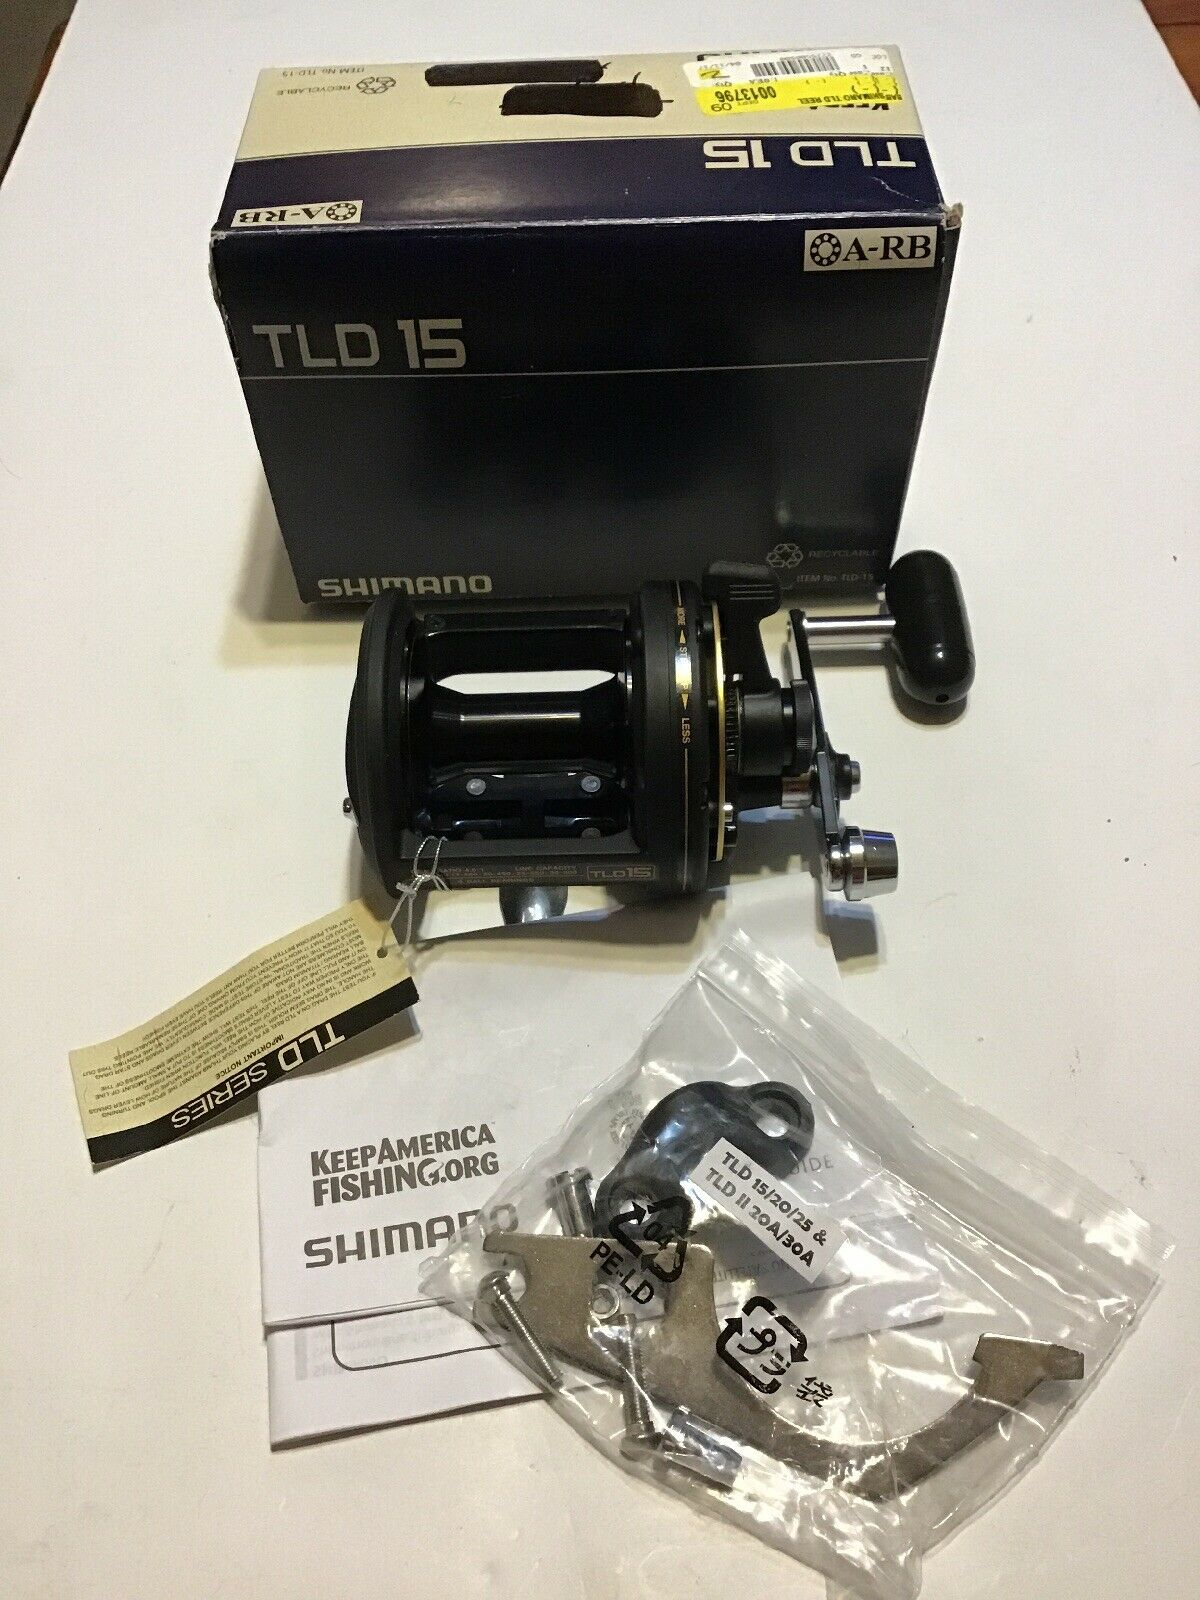 SHIMANO  TLD 15  Lever Drag Reel  high-quality merchandise and convenient, honest service